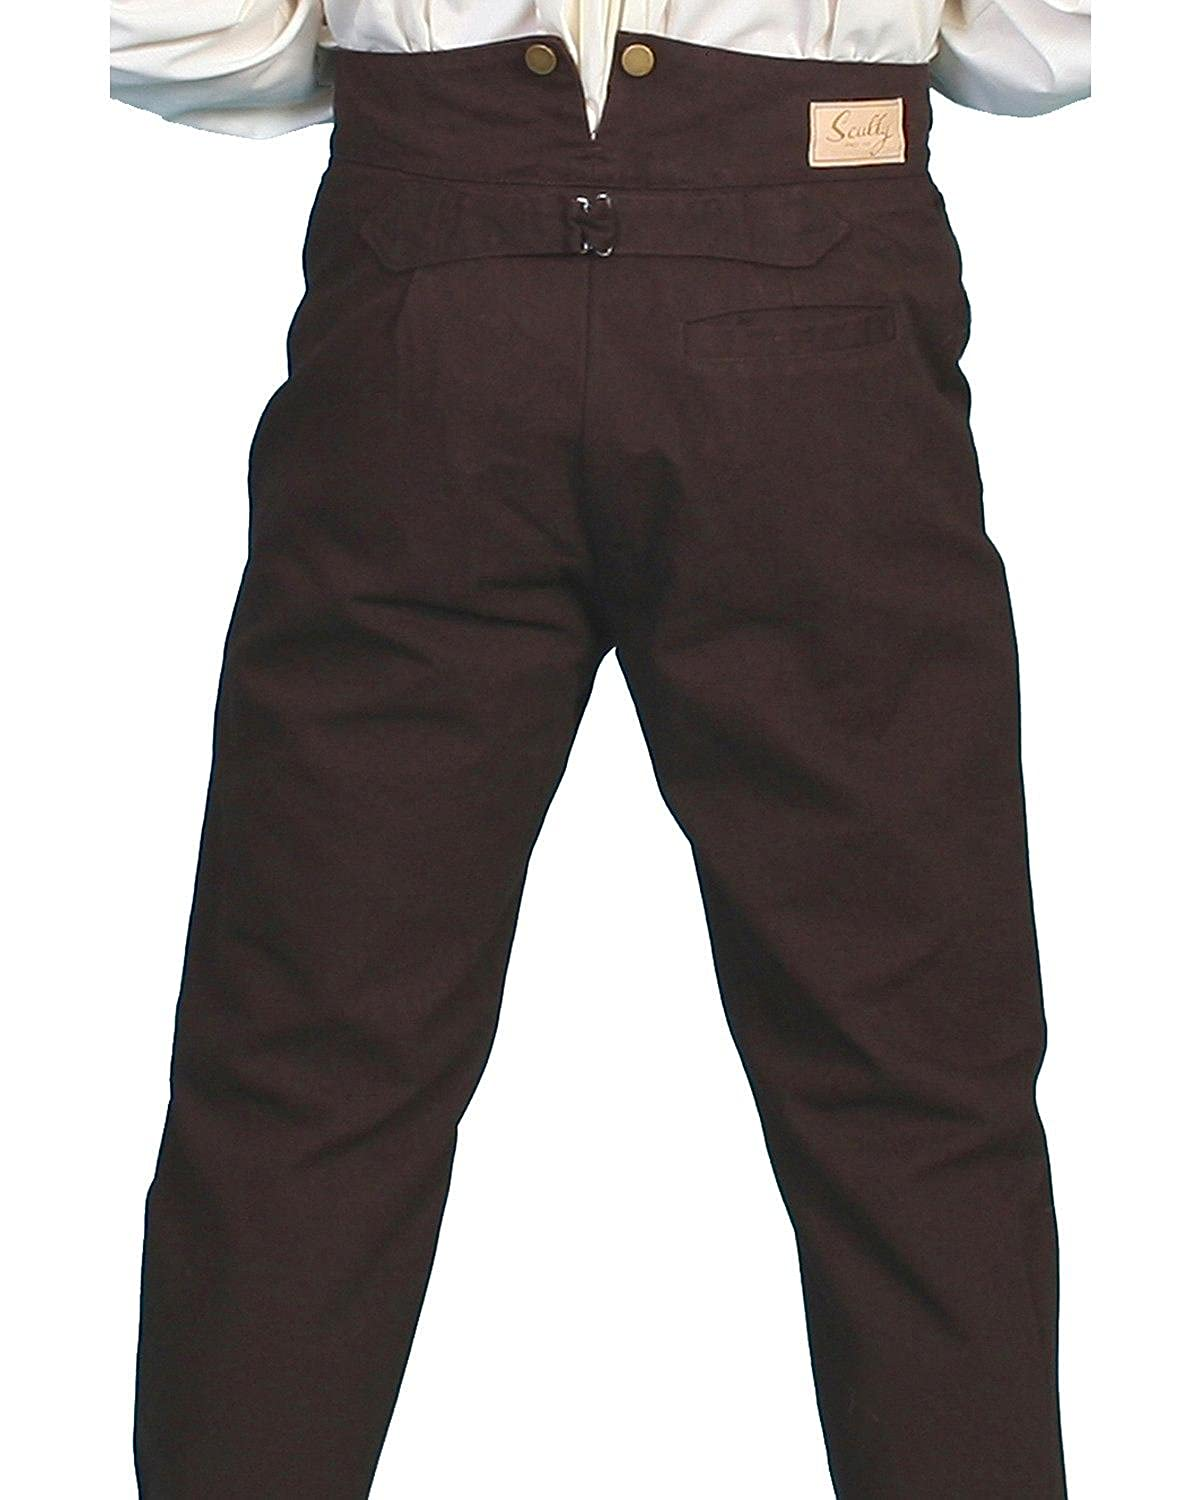 1920s Fashion for Men Scully Rangewear Mens Rangewear Canvas Pants $51.90 AT vintagedancer.com